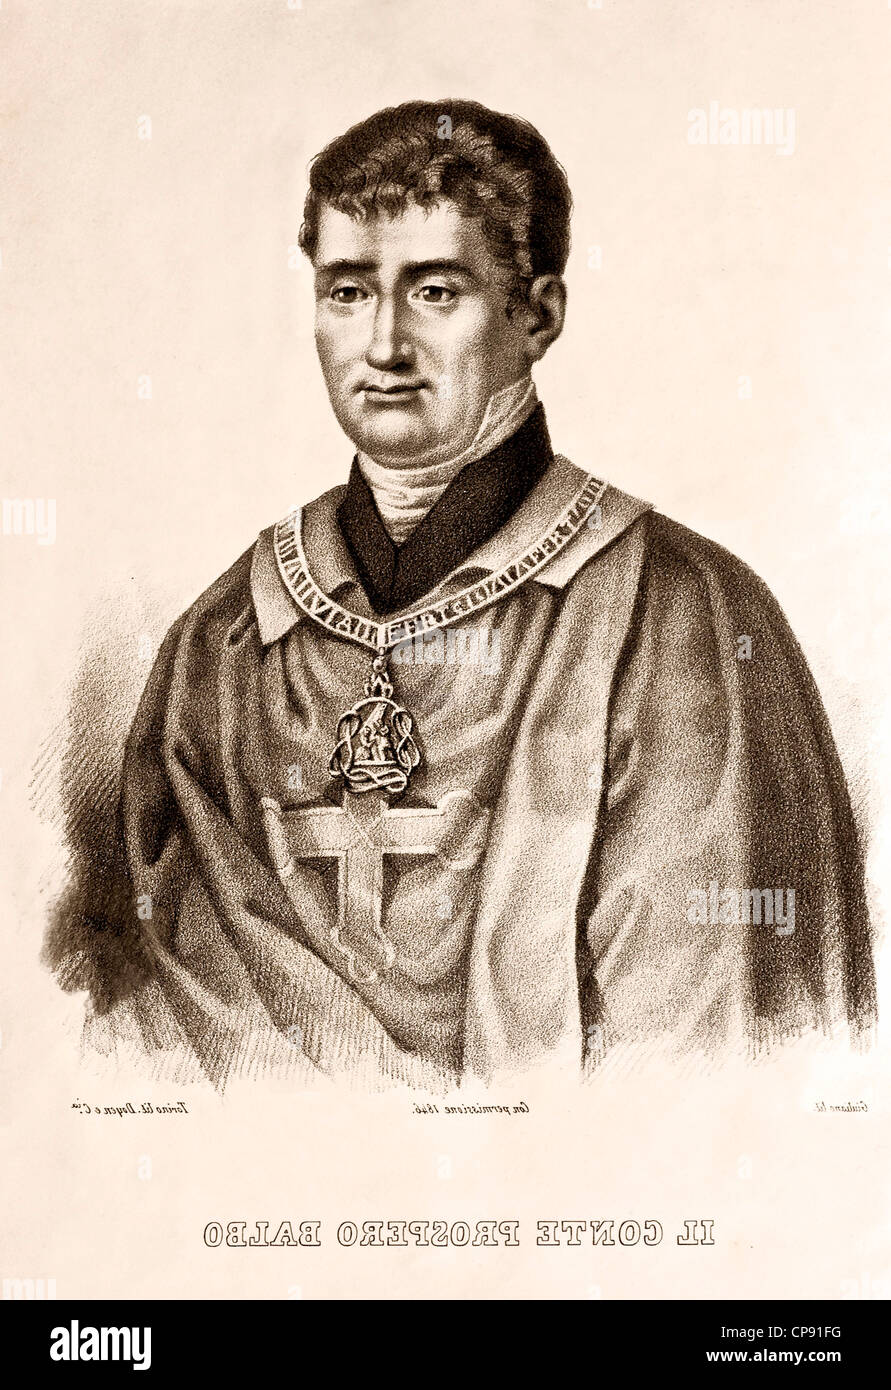 lithography of Count Prospero Balbo, (Turin, July 1, 1762 - Turin, March 14, 1837) printed in1846 - Stock Image